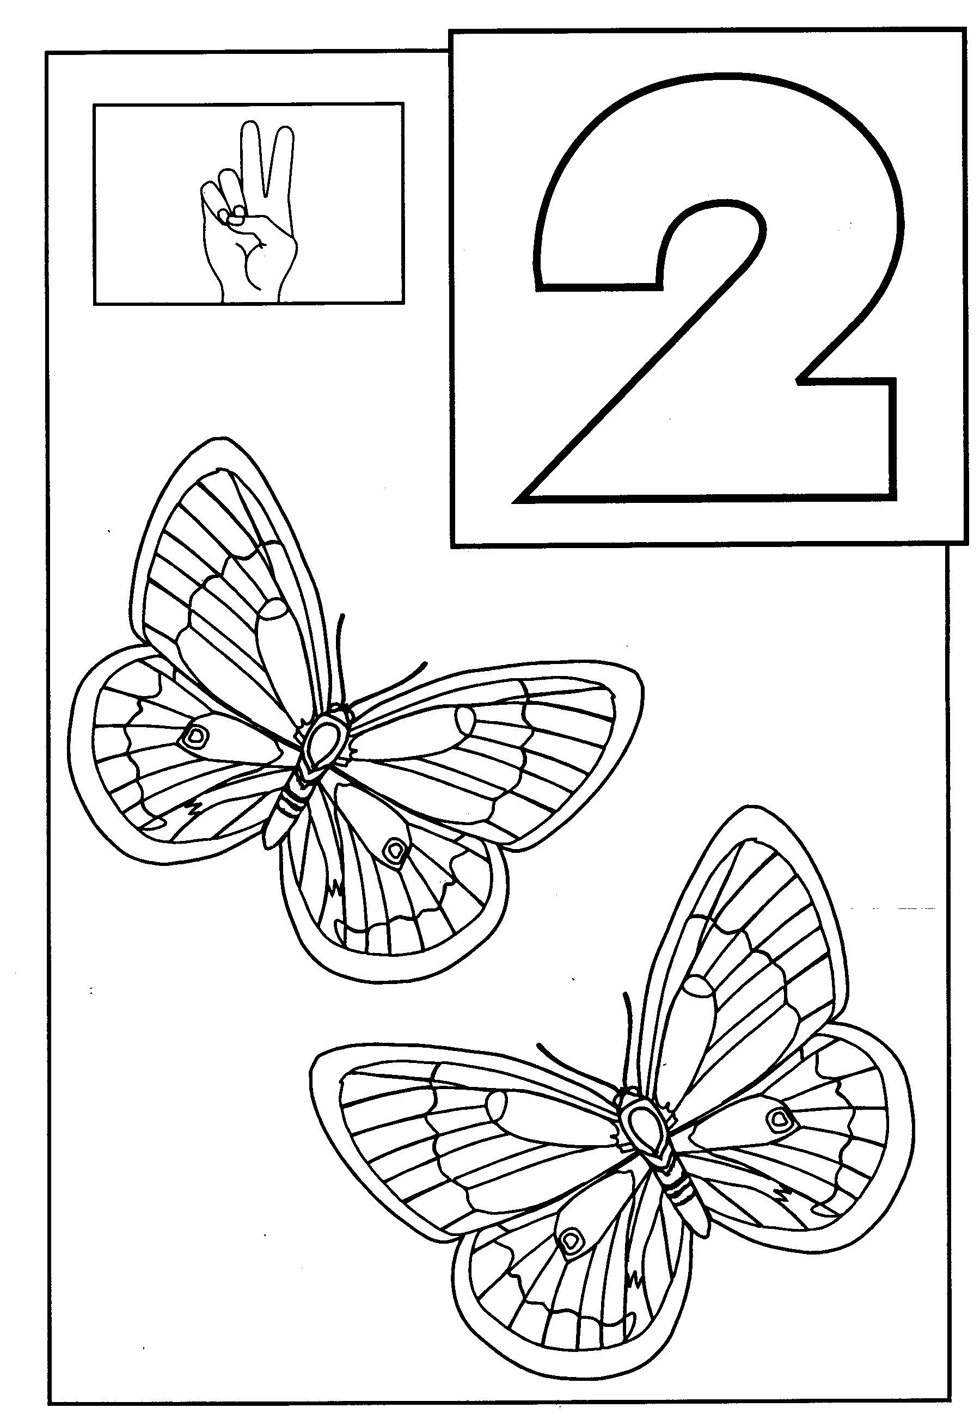 number 2 coloring pages for toddlers - number 2 coloring pages for toddlers murderthestout